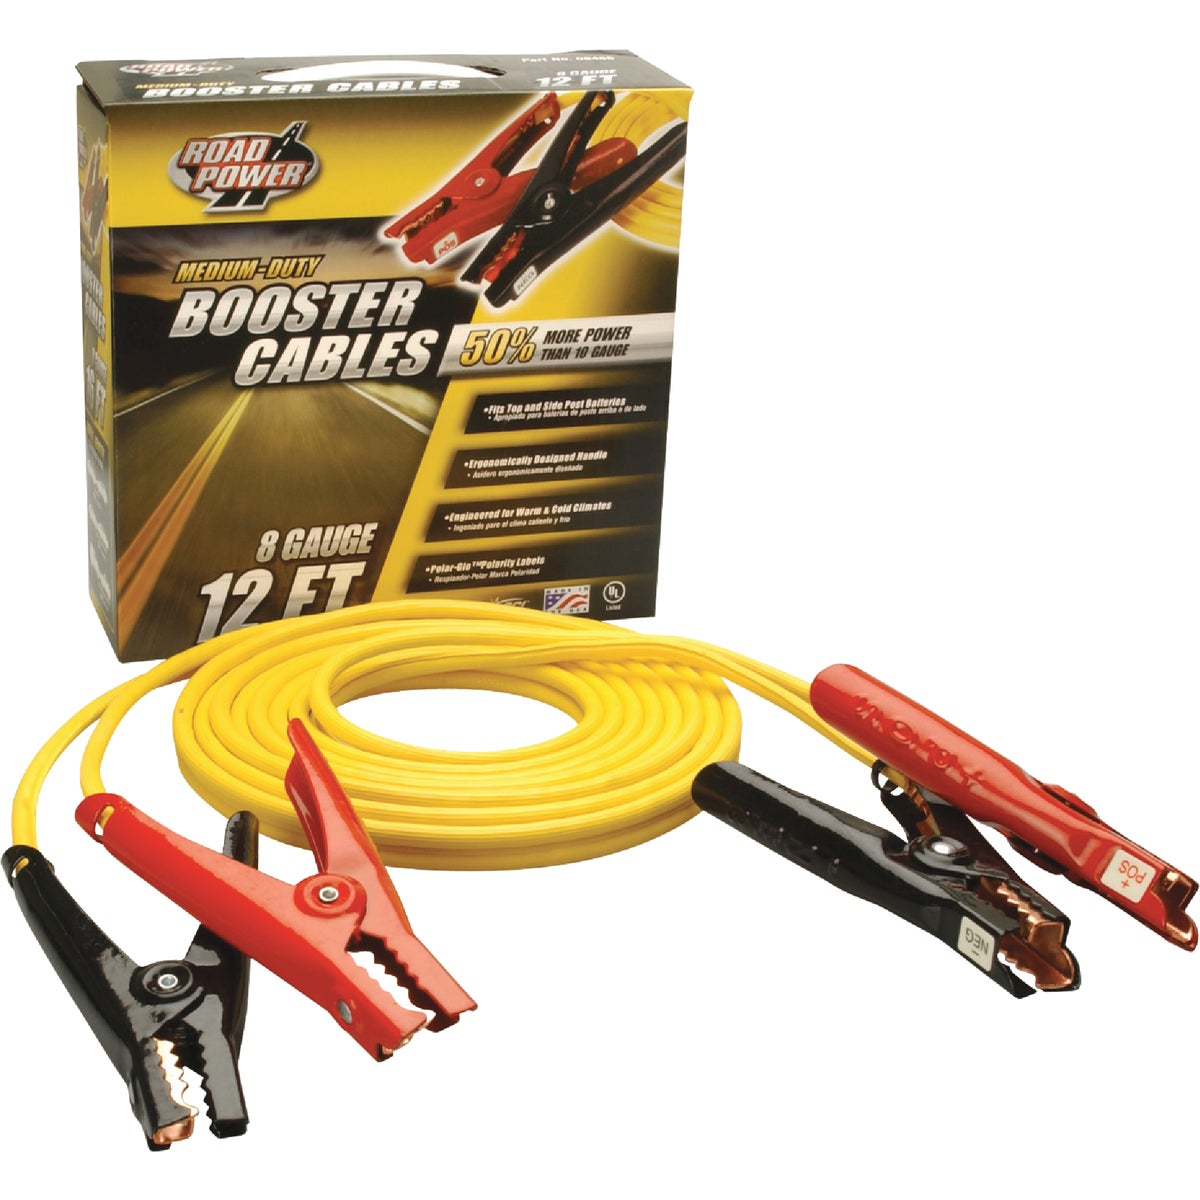 ROAD POWER Medium-Duty Booster Cable, 08471-88-02